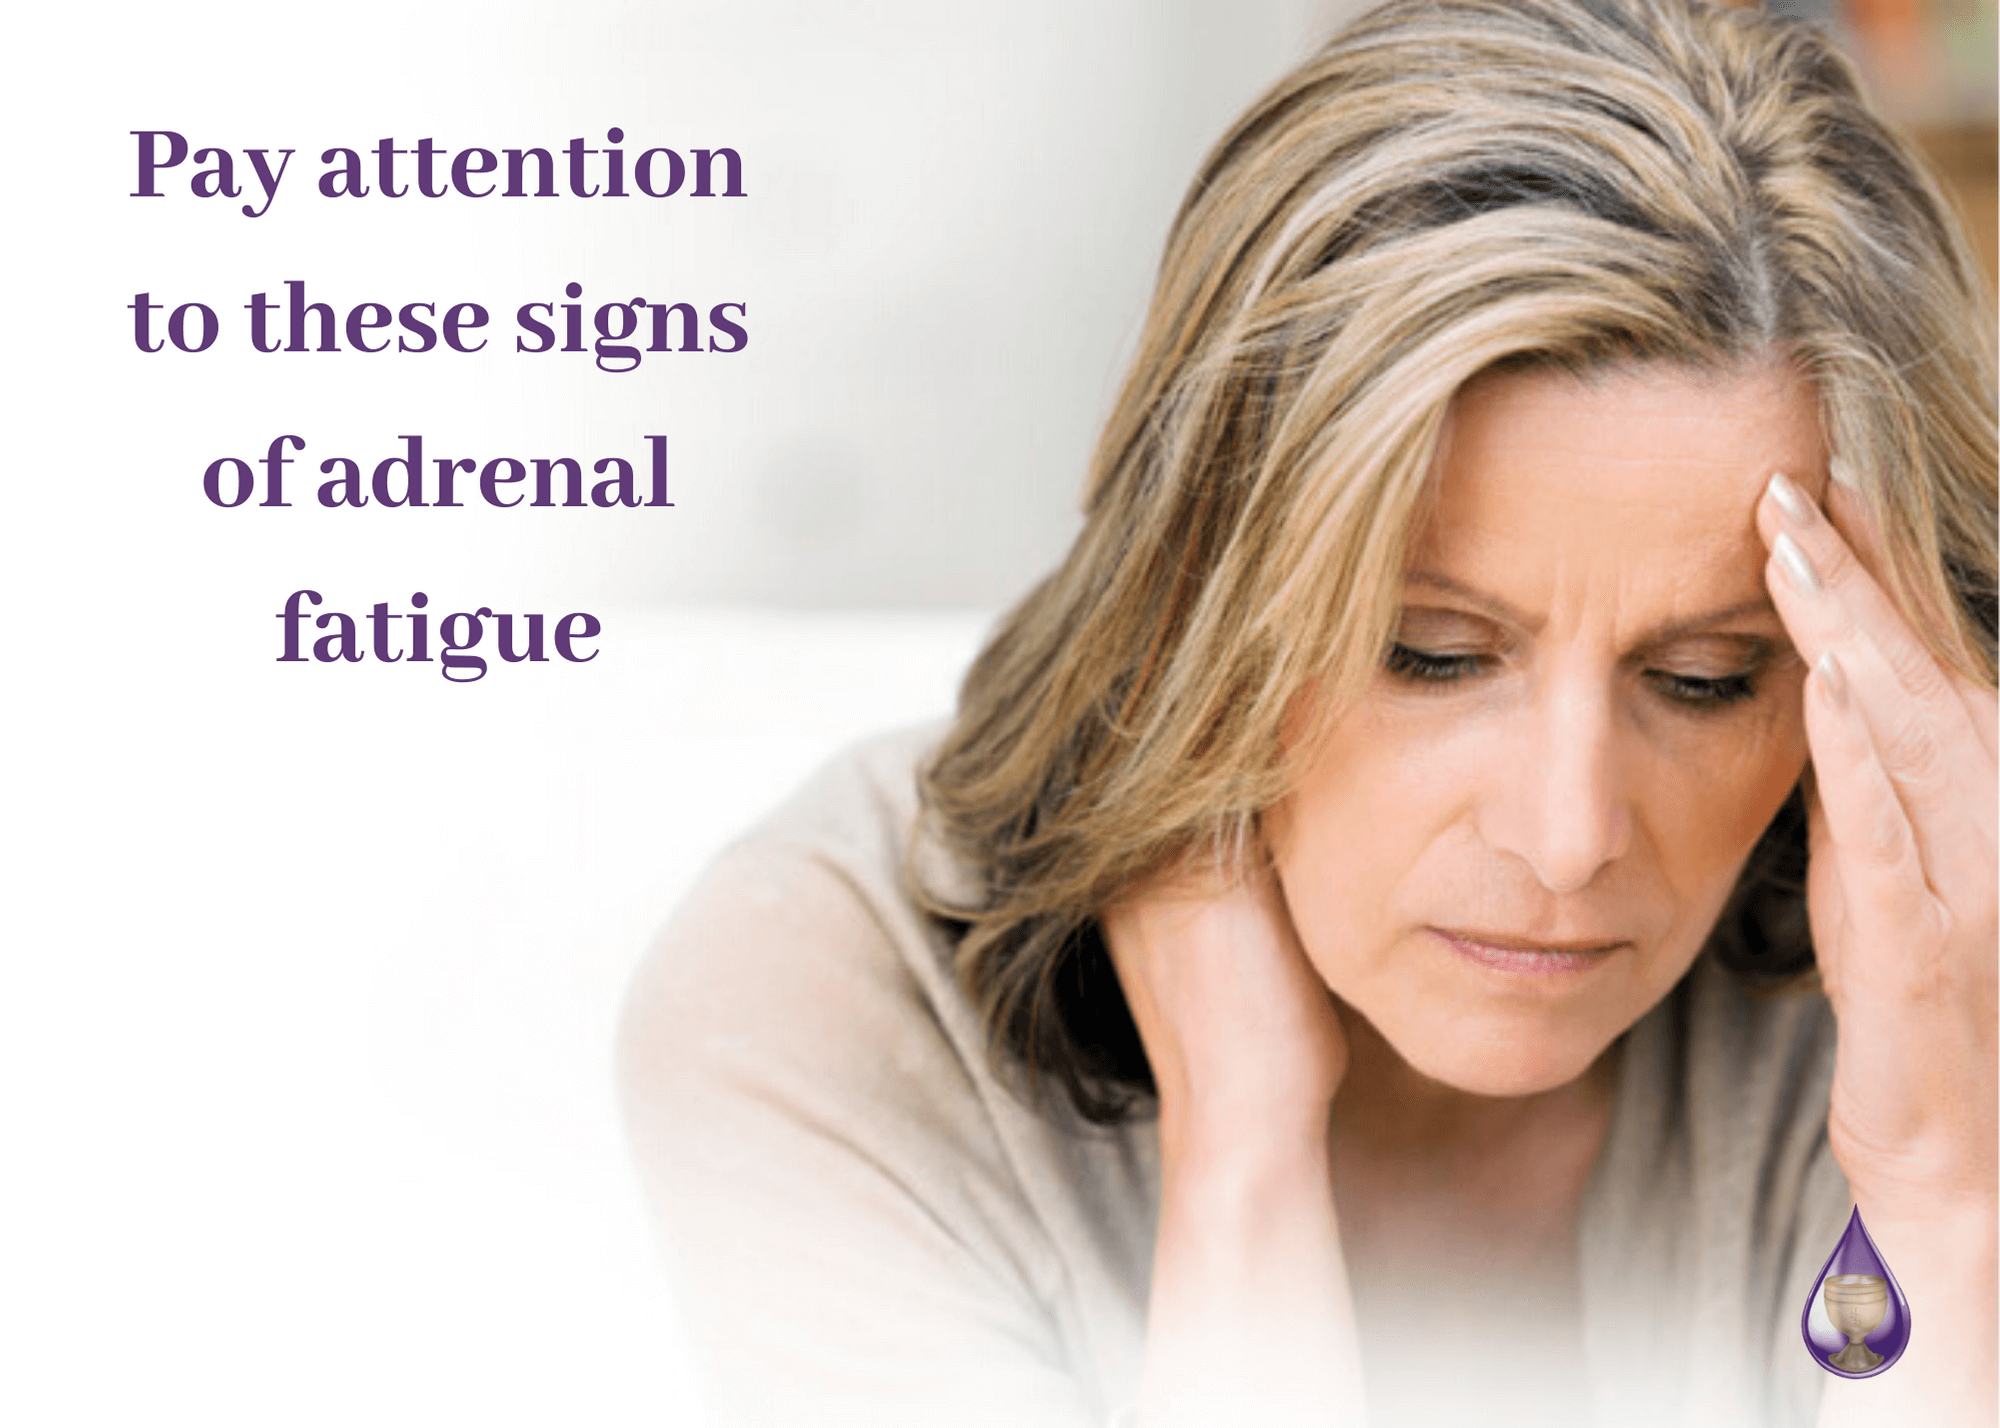 pay attention to these signs of adrenal fatigue